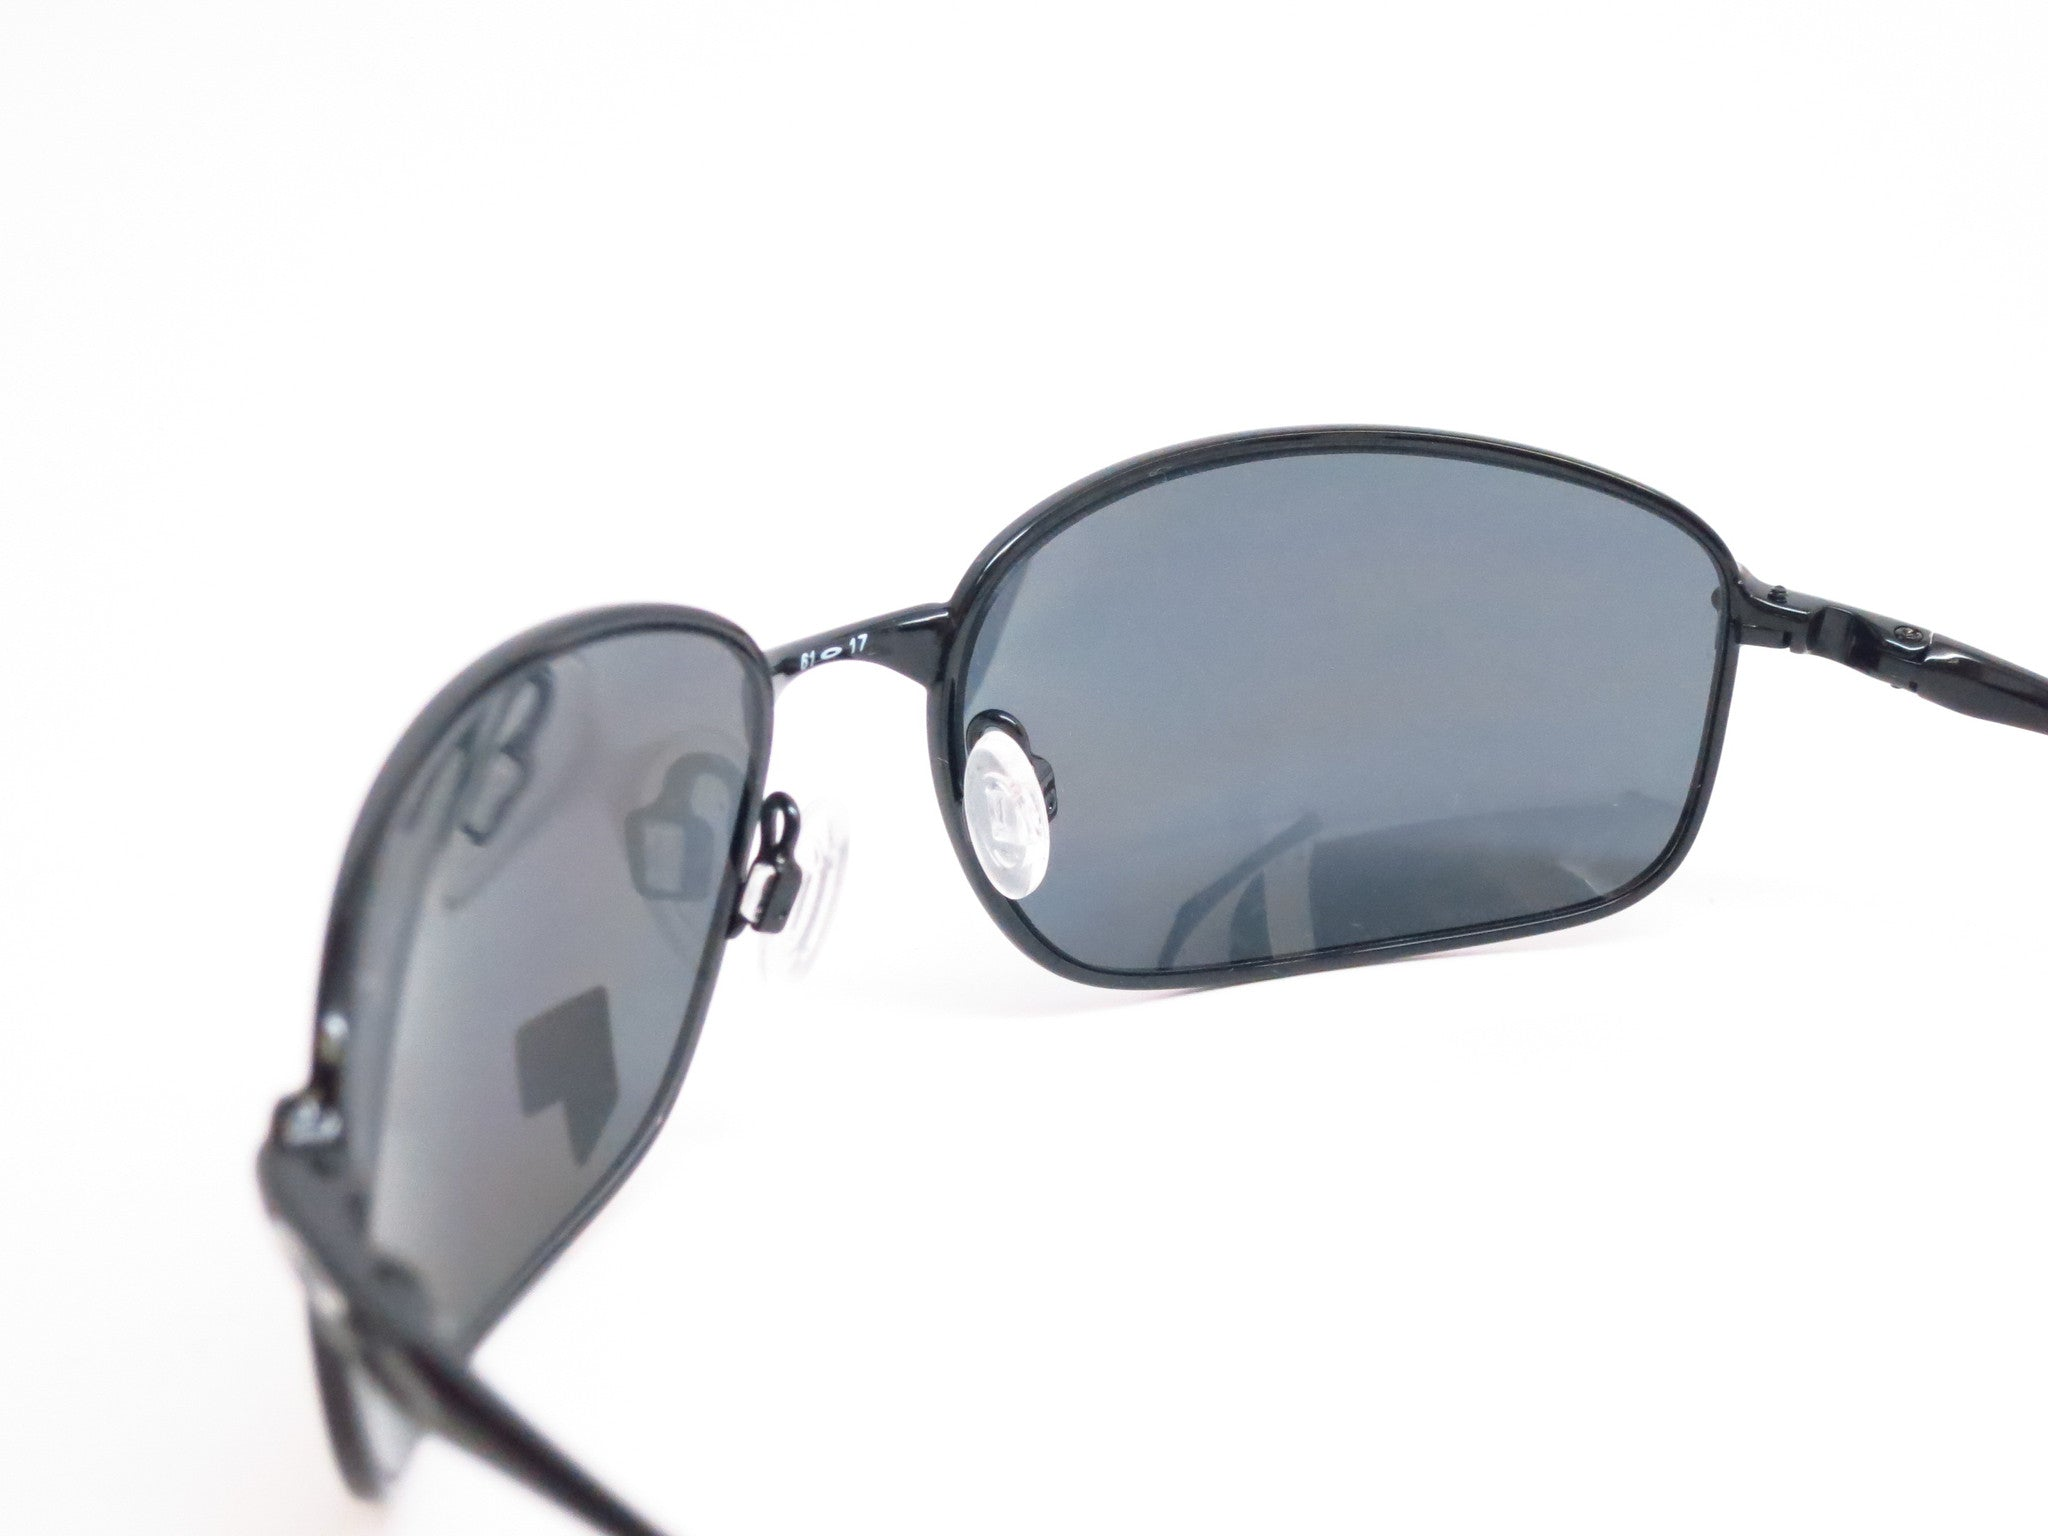 83ff4a0d54b Oakley Taper OO4074-04 Polished Black Polarized Sunglasses - Eye Heart  Shades